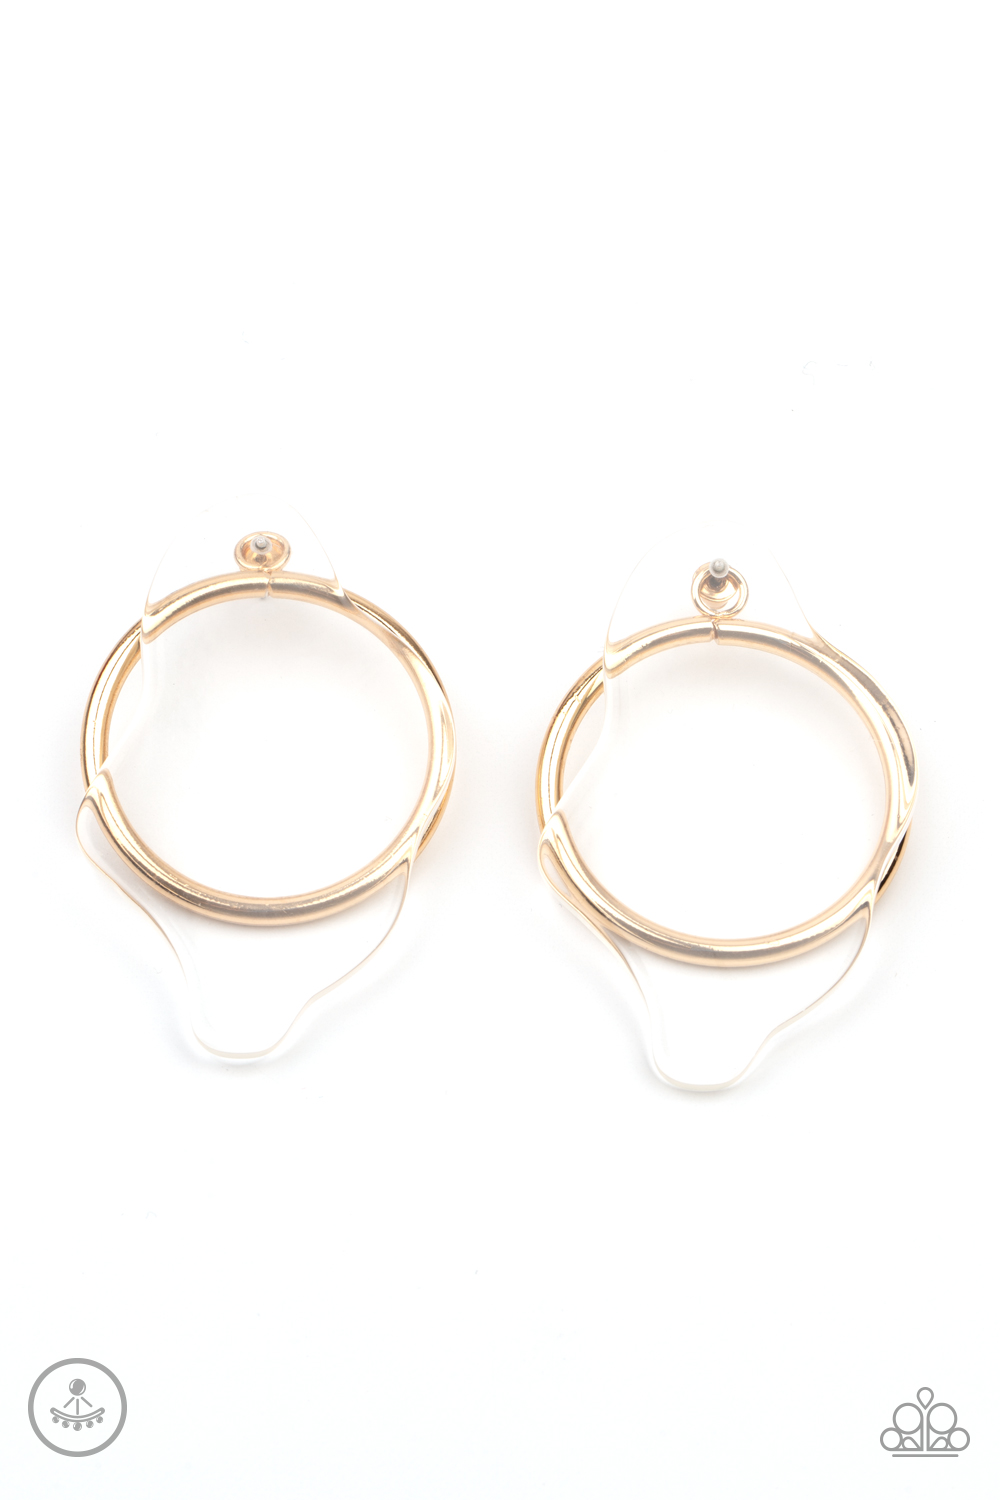 Paparazzi Accessories:  Clear The Way! - Gold (420)